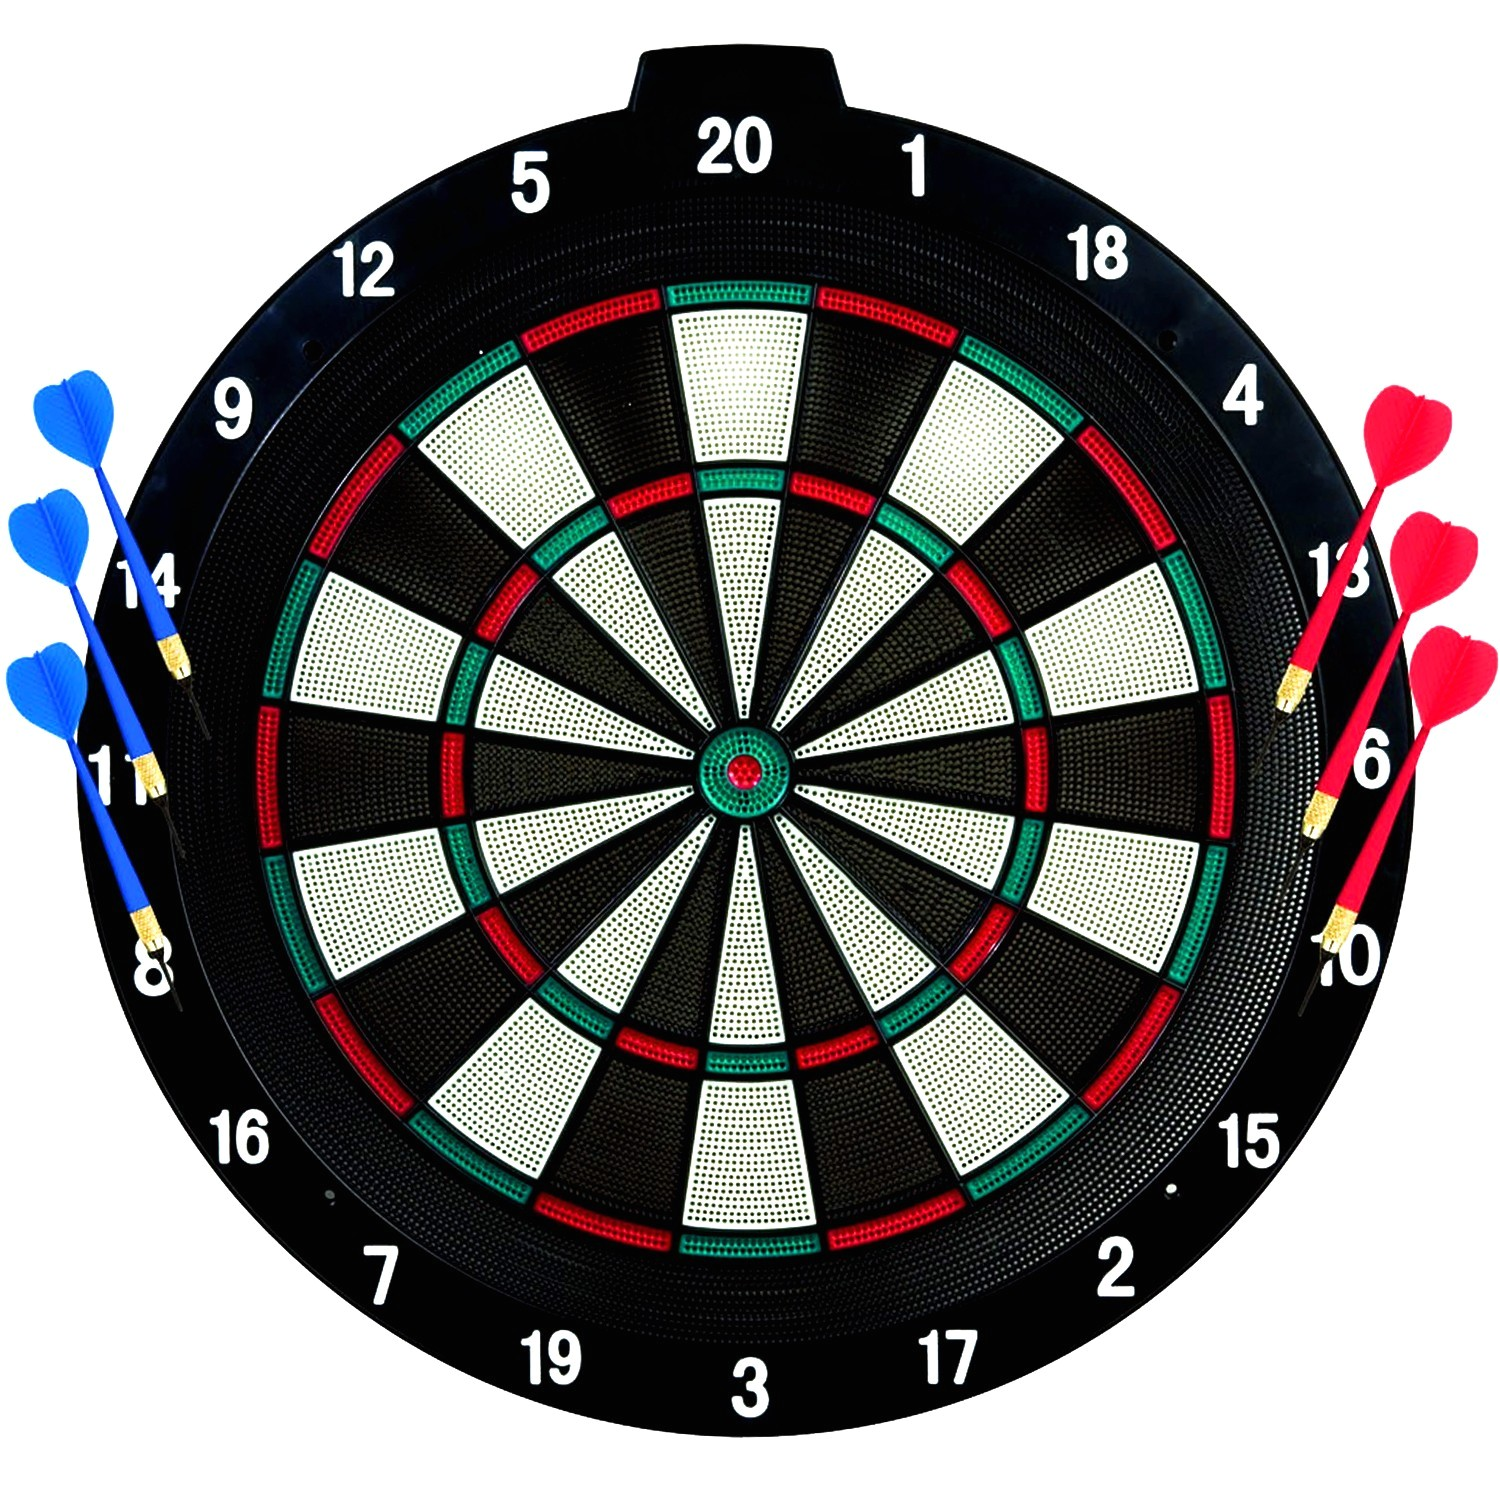 soft tip dartboard